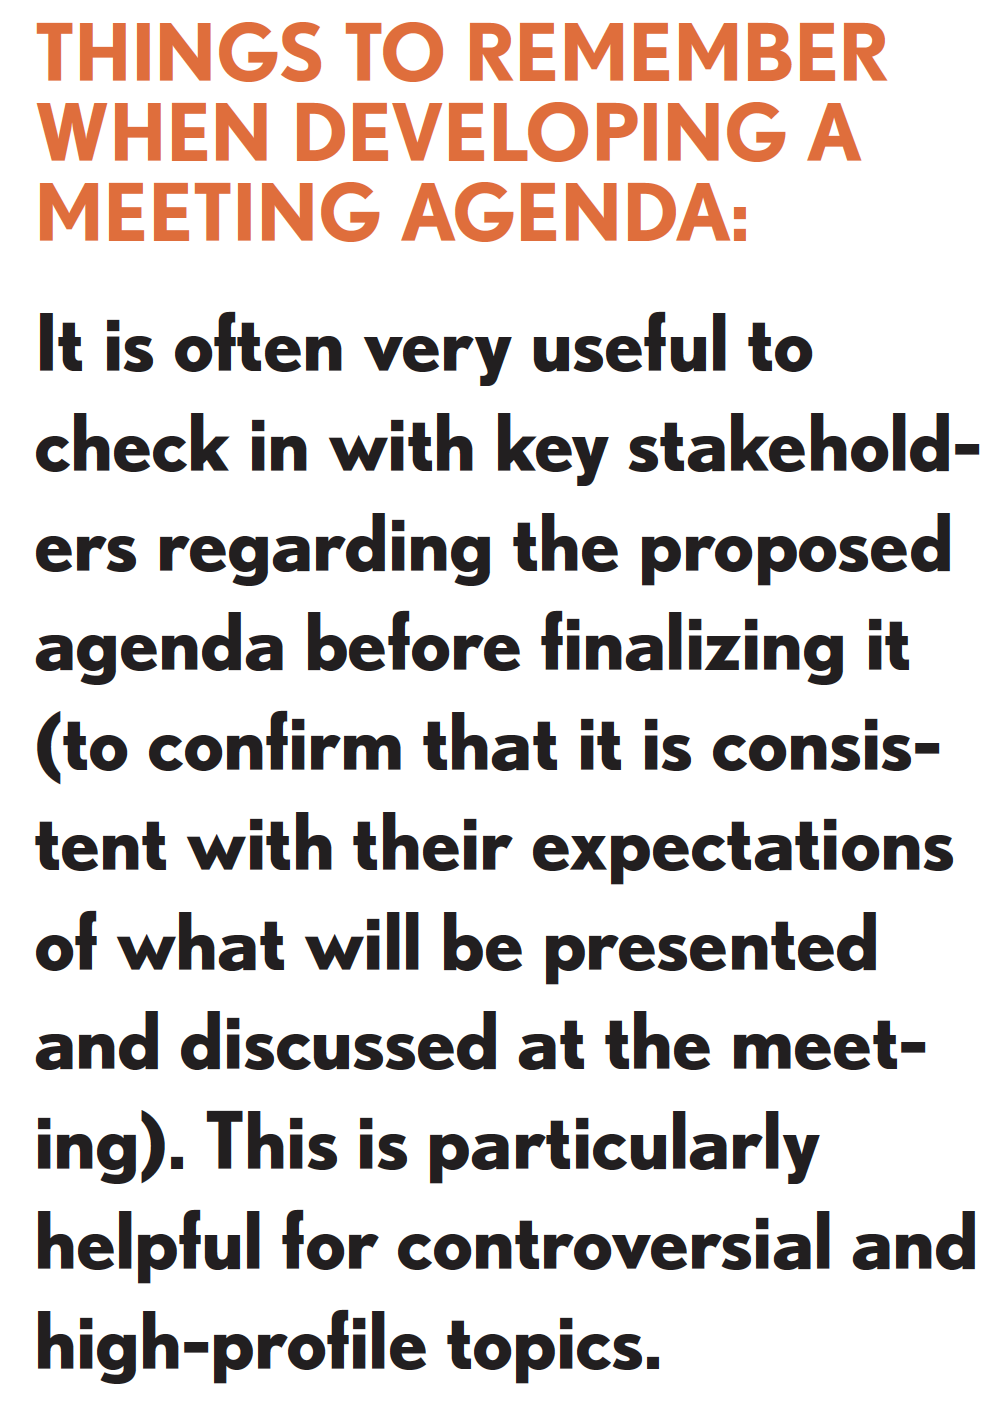 Picture of things to remember when developing a meeting agenda. It is often very useful to check in with key stakeholders regarding the proposed agenda before finalizing it (to confirm that it is consistent with their expectations of what will be presented and discussed at the meeting). This is particularly helpful for controversial and high-profile topics.